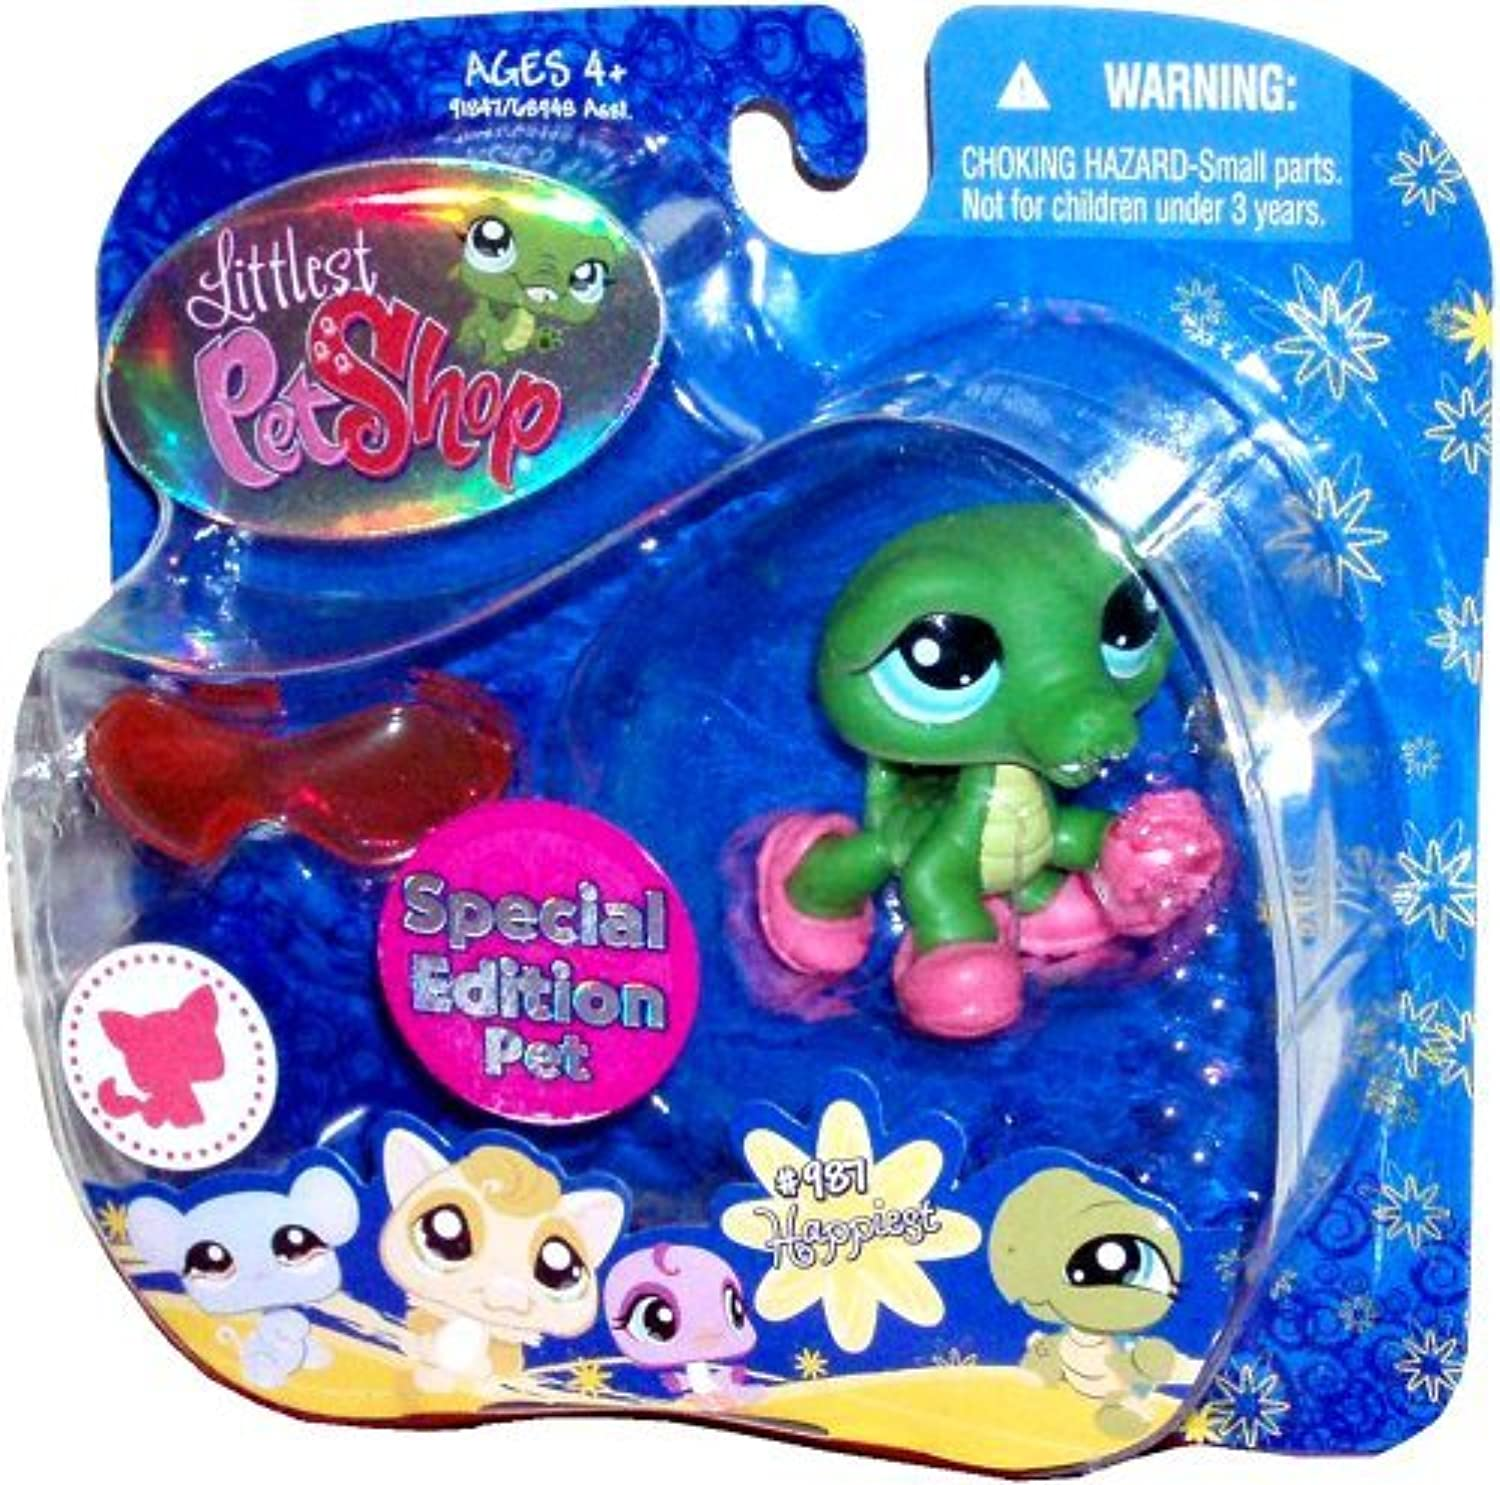 Hasbro Littlest Pet Shop Special Edition Pet Portable Collectible Bobble Head Figure Set - Happiest #987 Alligator with Slippers and Sunglasses by Littlest Pet Shop [並行輸入品]